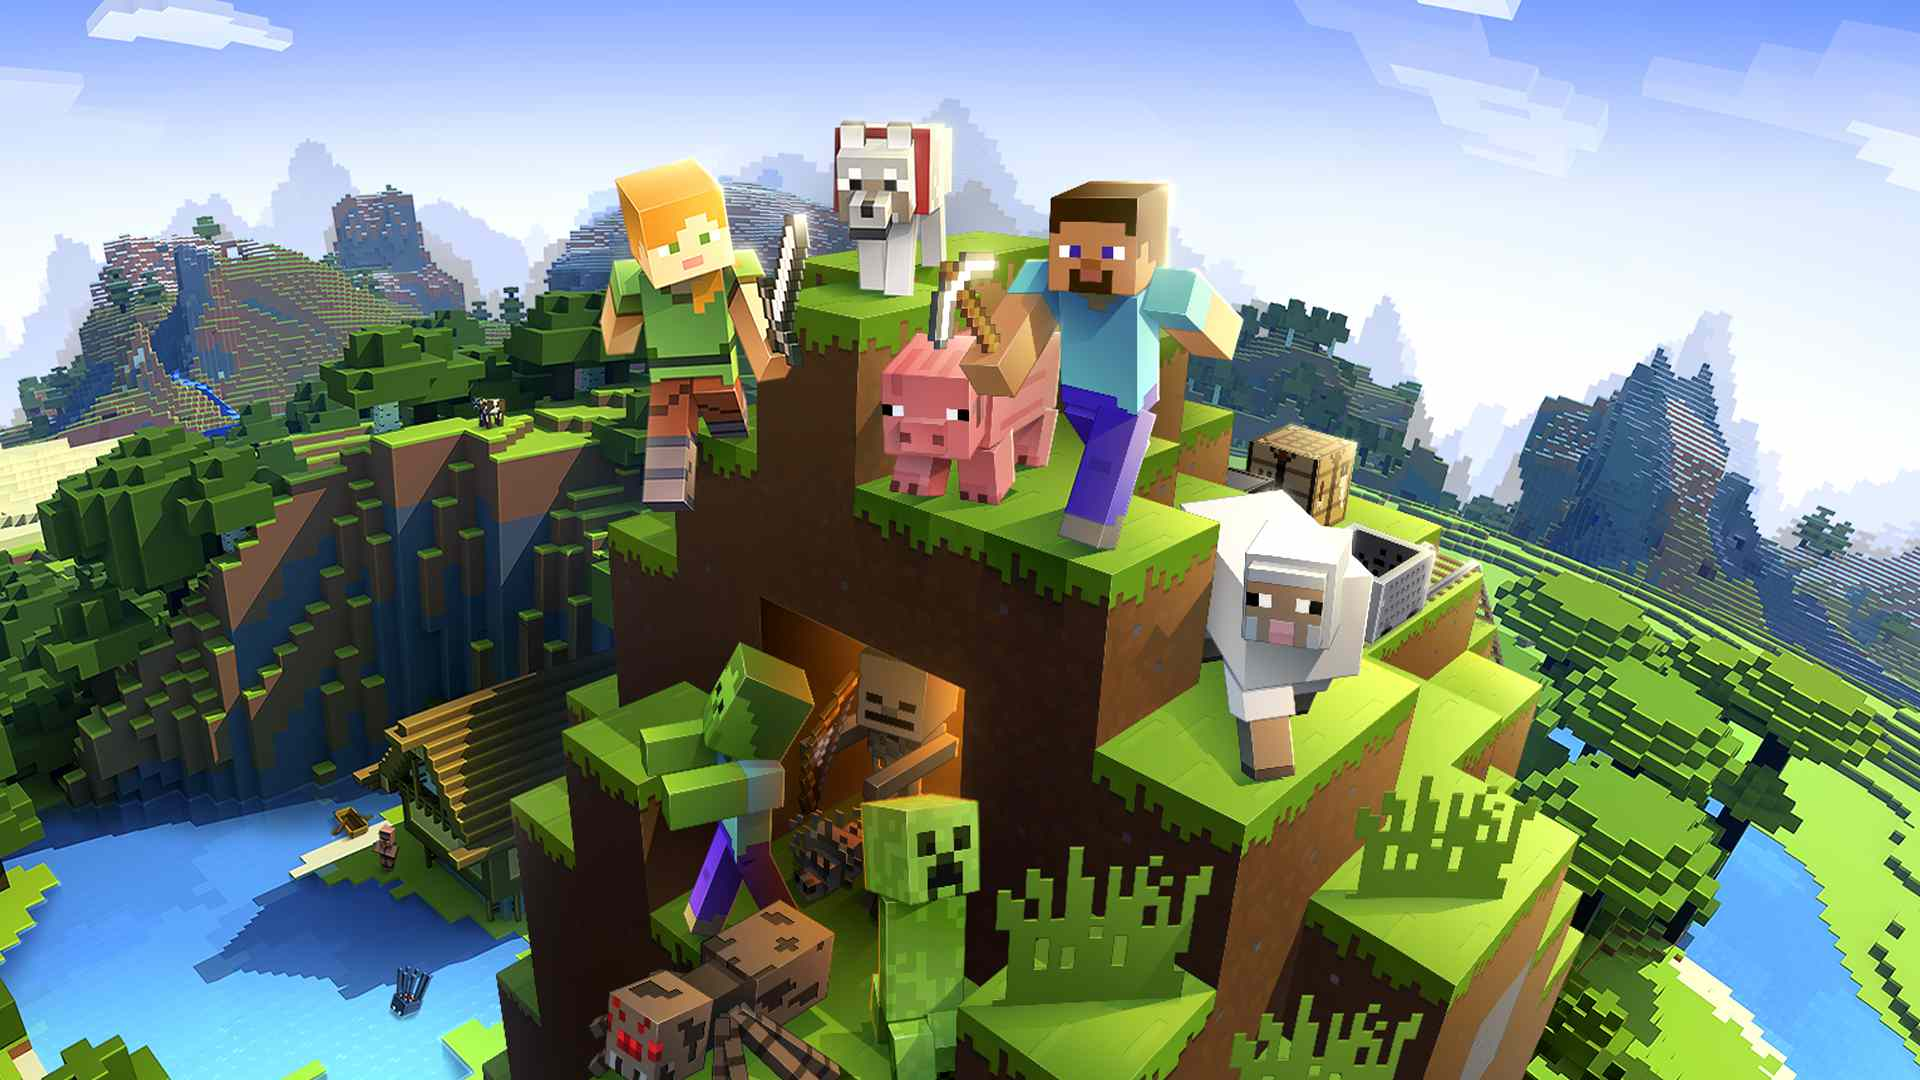 Minecraft video game on Xbox and Nintendo Switch.